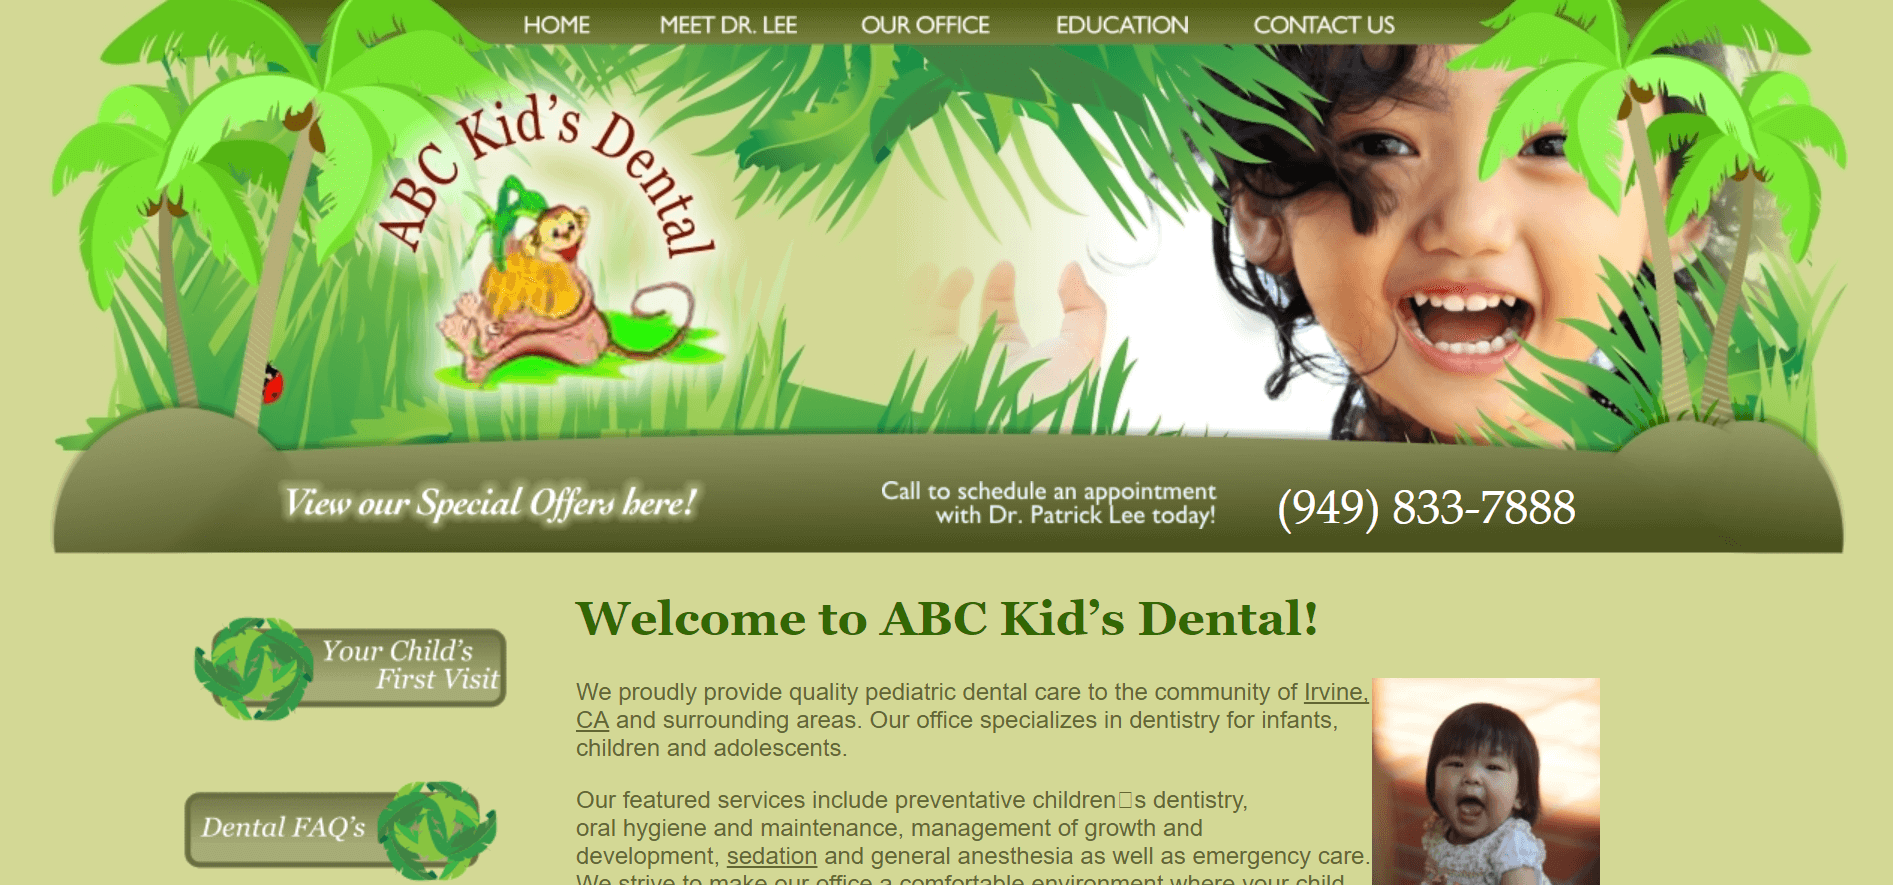 website for pediatric dental clinic example